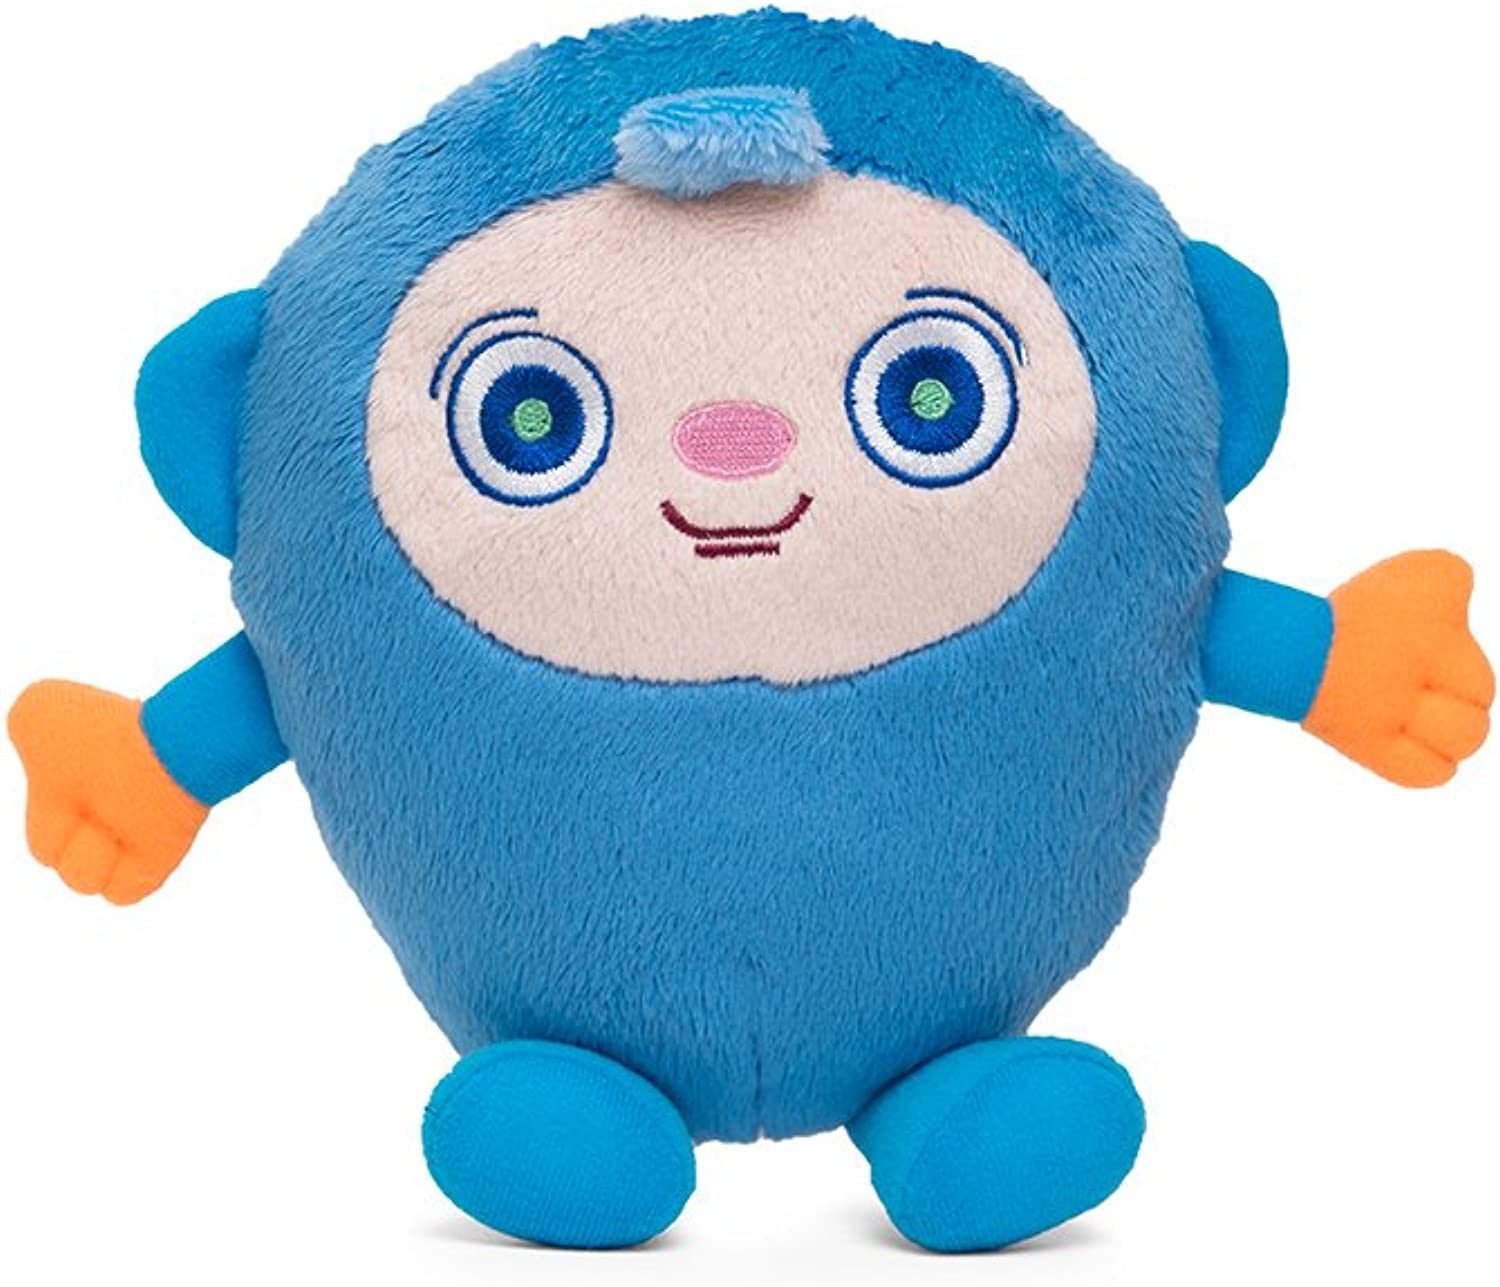 Baby First TV  Peekaboo Plush  7   Soft Plush Toy Baby Shower Gifts Toys Deals Big Plush Toys  Baby Gift  New Baby Gift  Plush Animals  Teddy Bears  Baby Toys  Plush Puppets  Baby First TV Gift Ideas  PERFECT BIRTHDAY GIFT